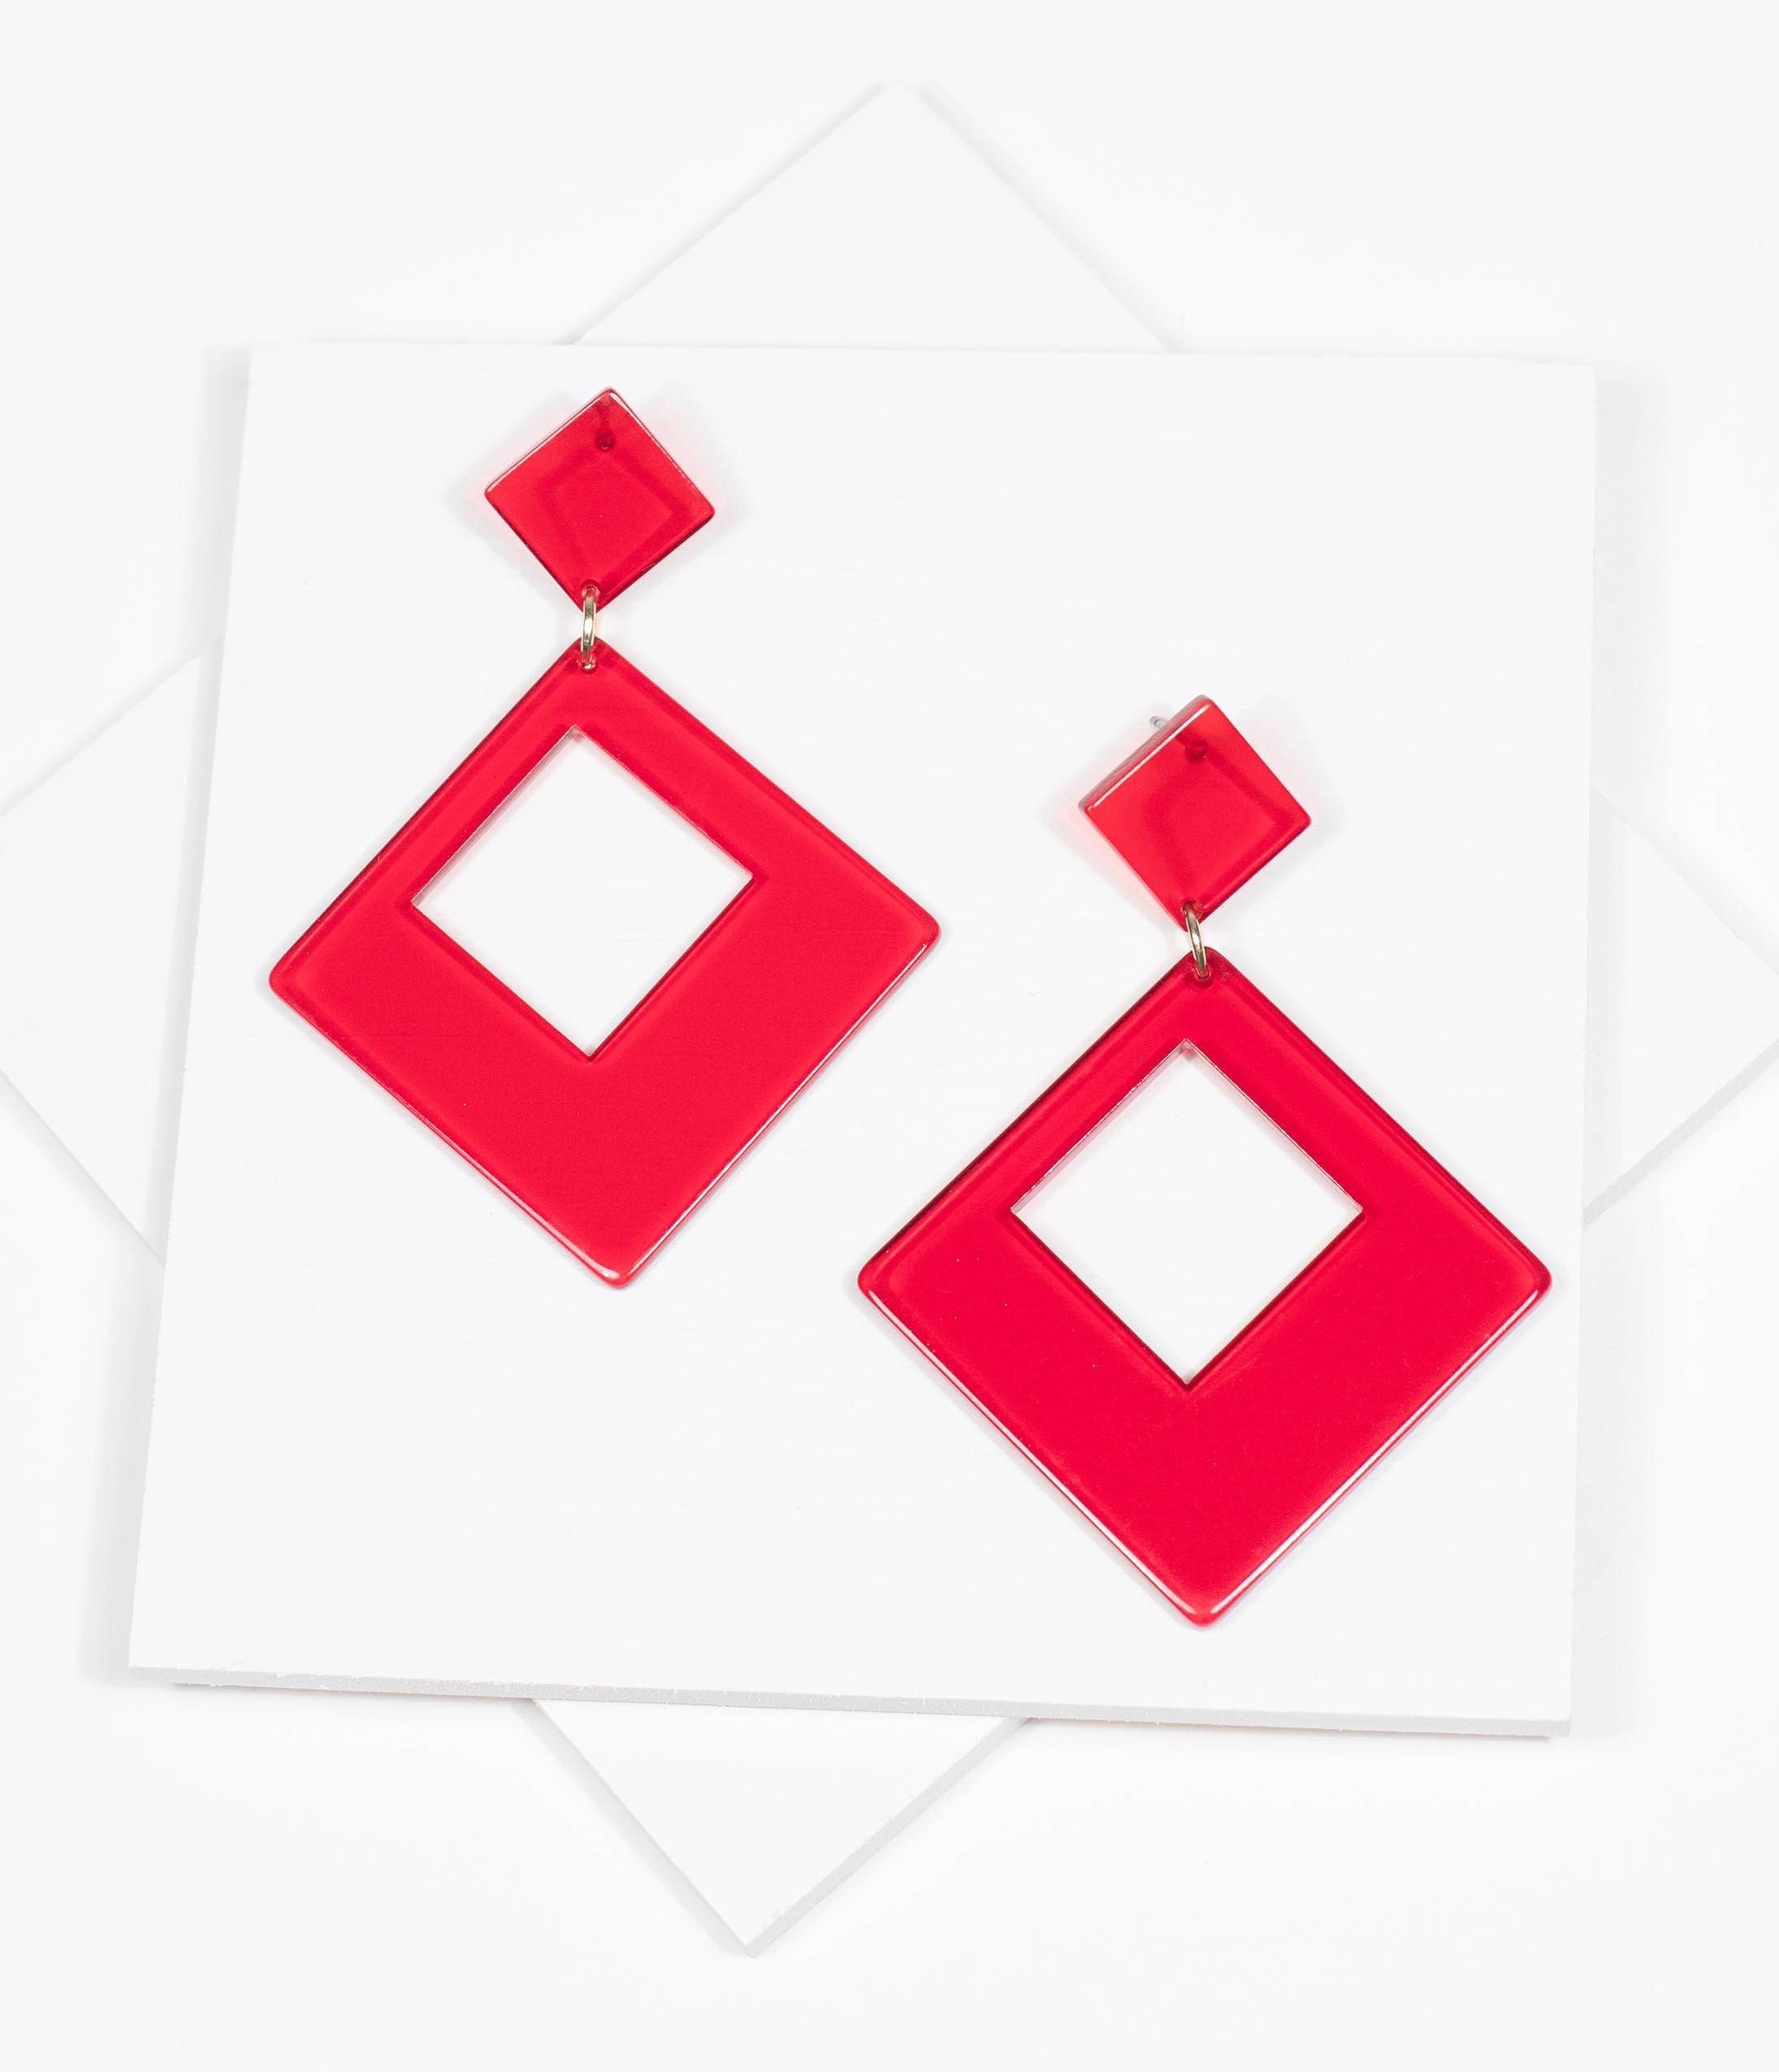 60s -70s Jewelry – Necklaces, Earrings, Rings, Bracelets Retro Style Red Square Resin Drop Earrings $26.00 AT vintagedancer.com